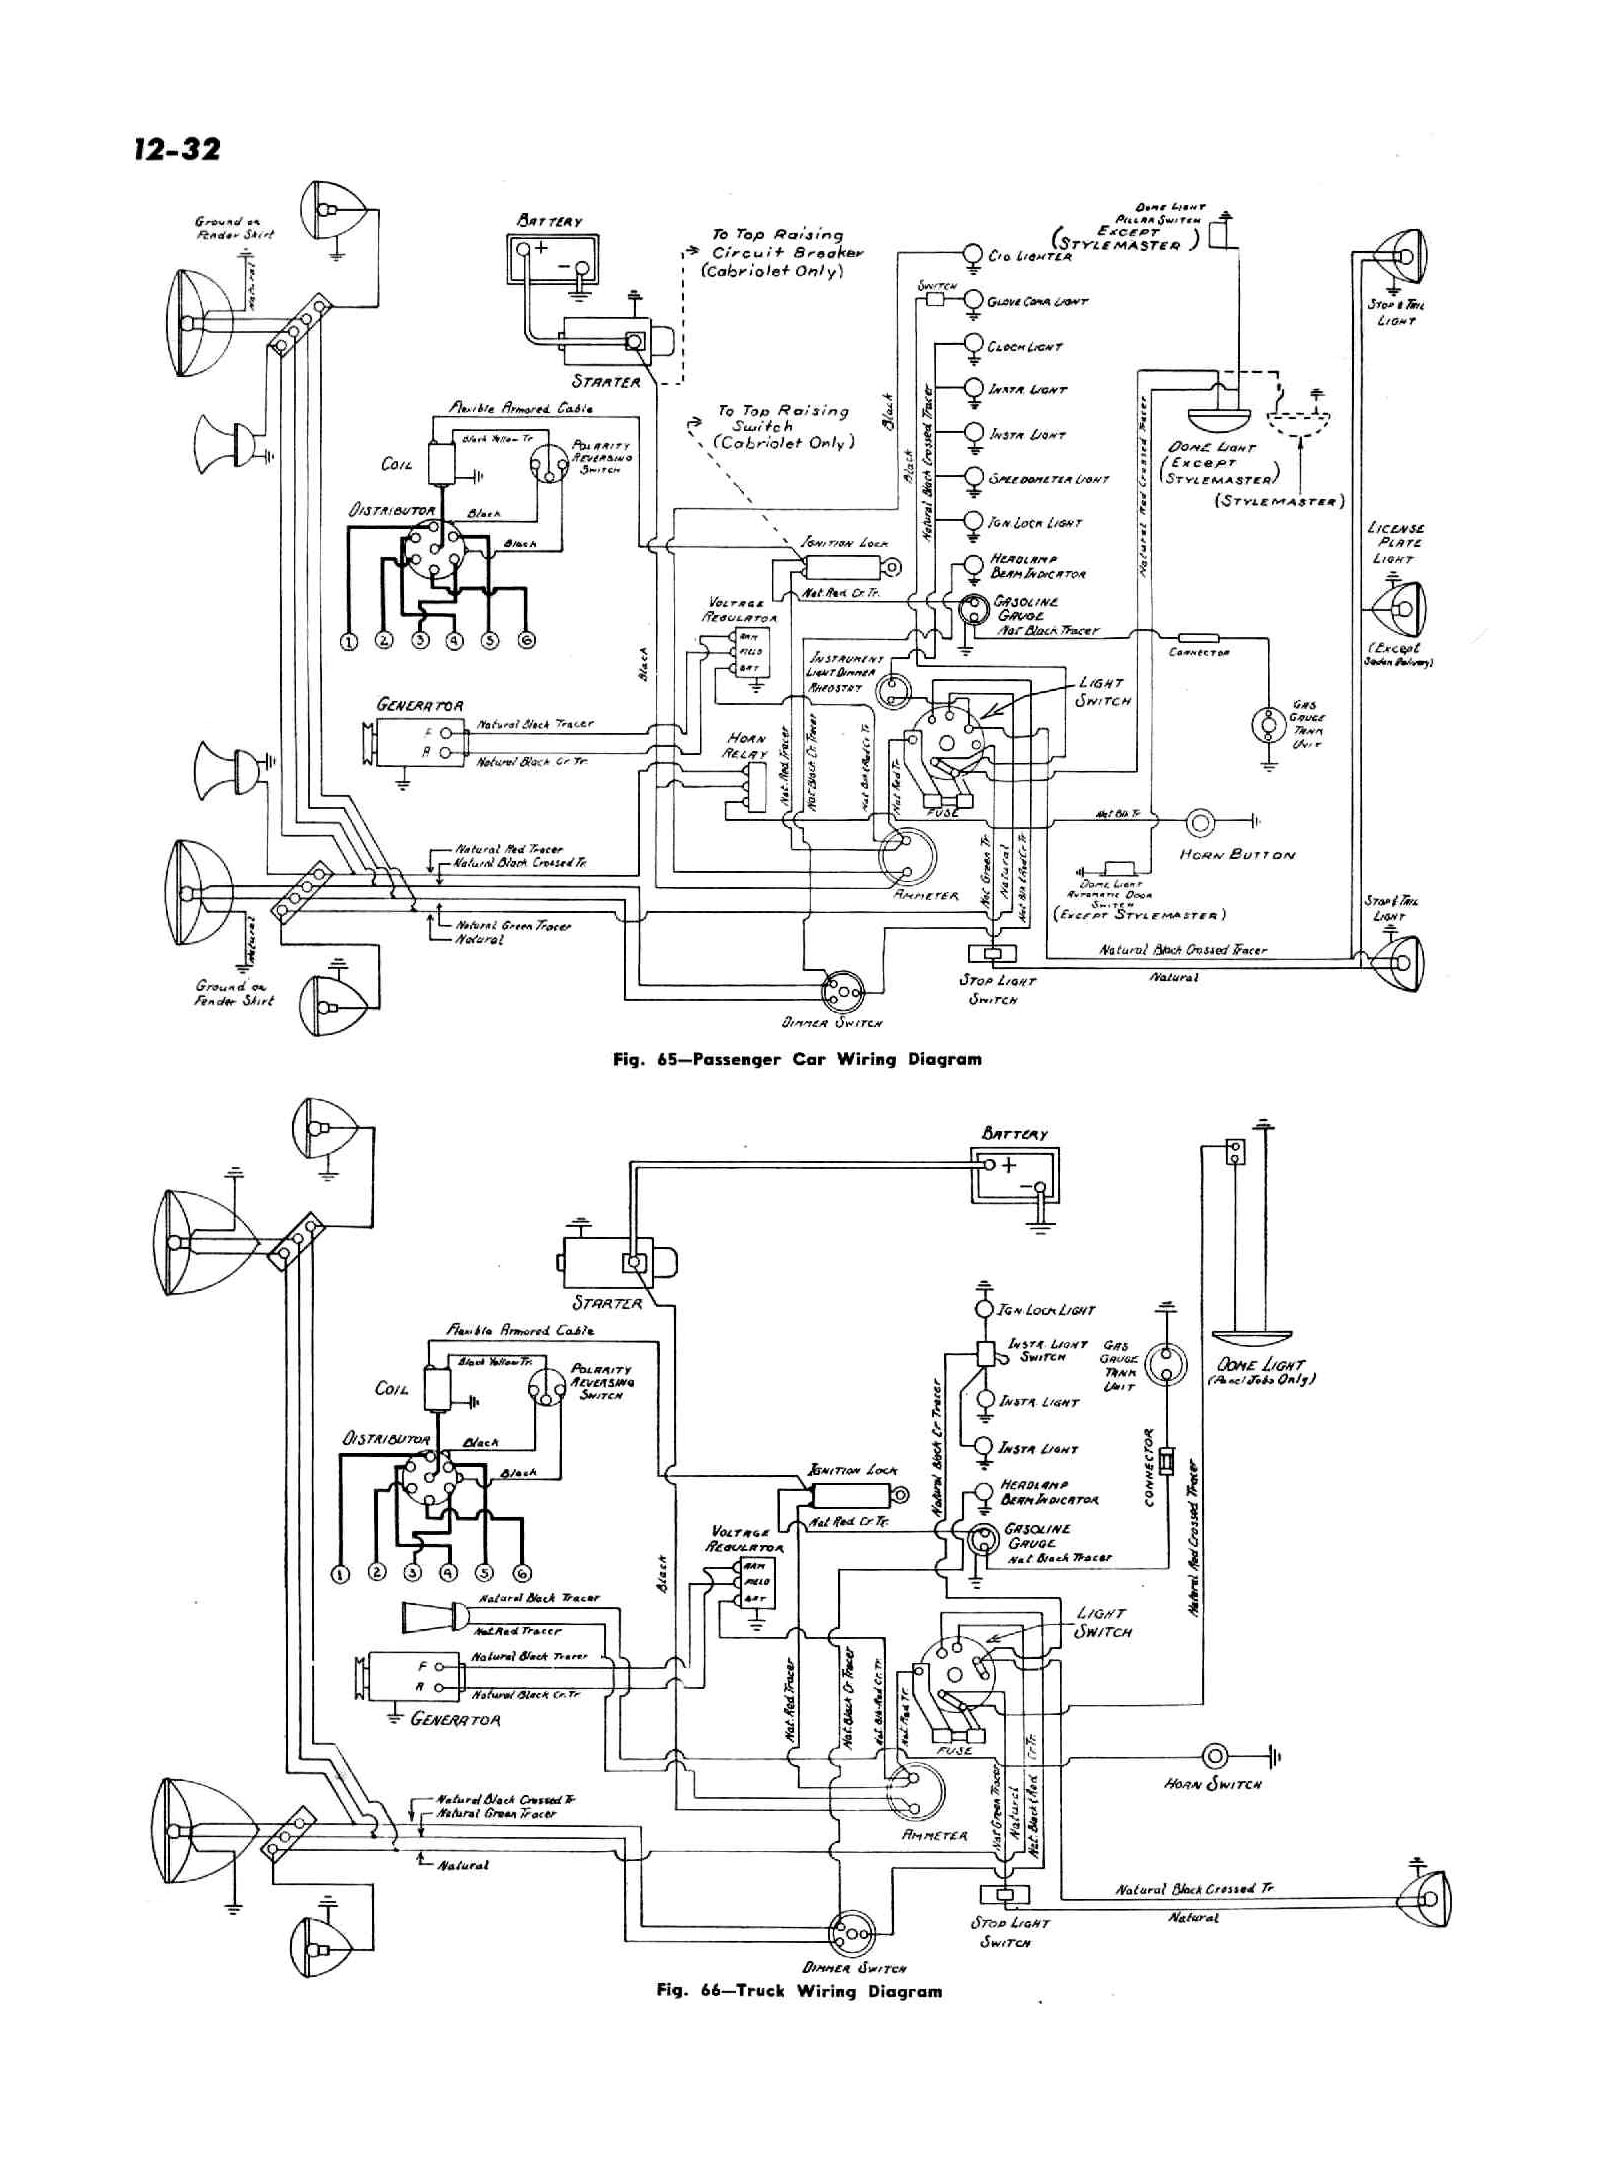 4247csm1232 chevy wiring diagrams truck wiring schematics at bayanpartner.co